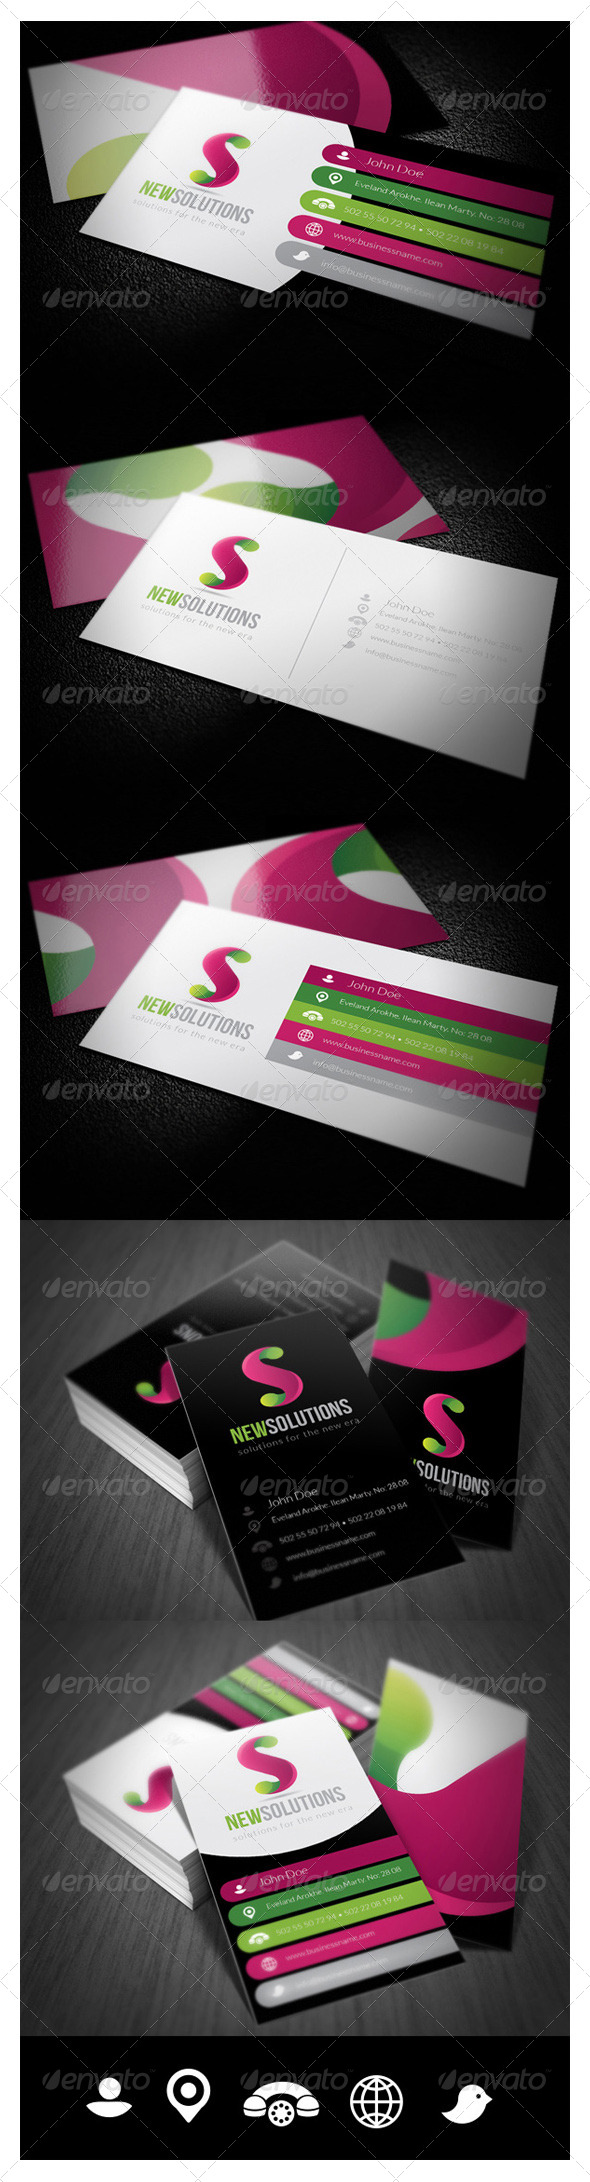 GraphicRiver 5 Flat Business Card 001 5819704